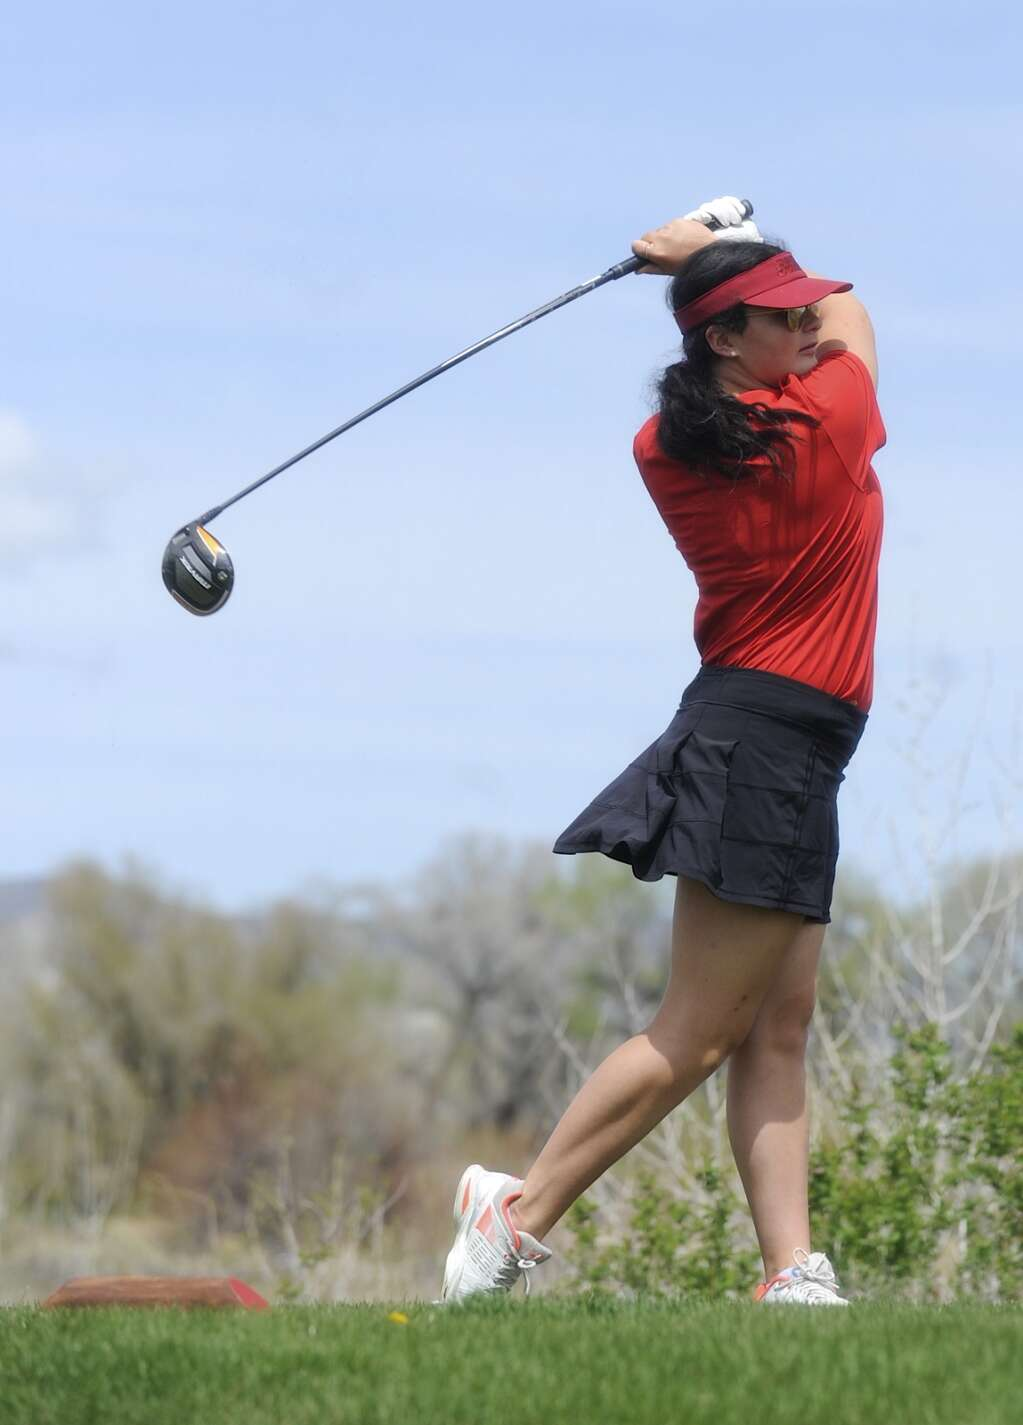 Steamboat Springs golfer Jacey Larock follows through her tee shot at the Bulldog Invite in Craig on Tuesday afternoon. (Photo by Shelby Reardon)